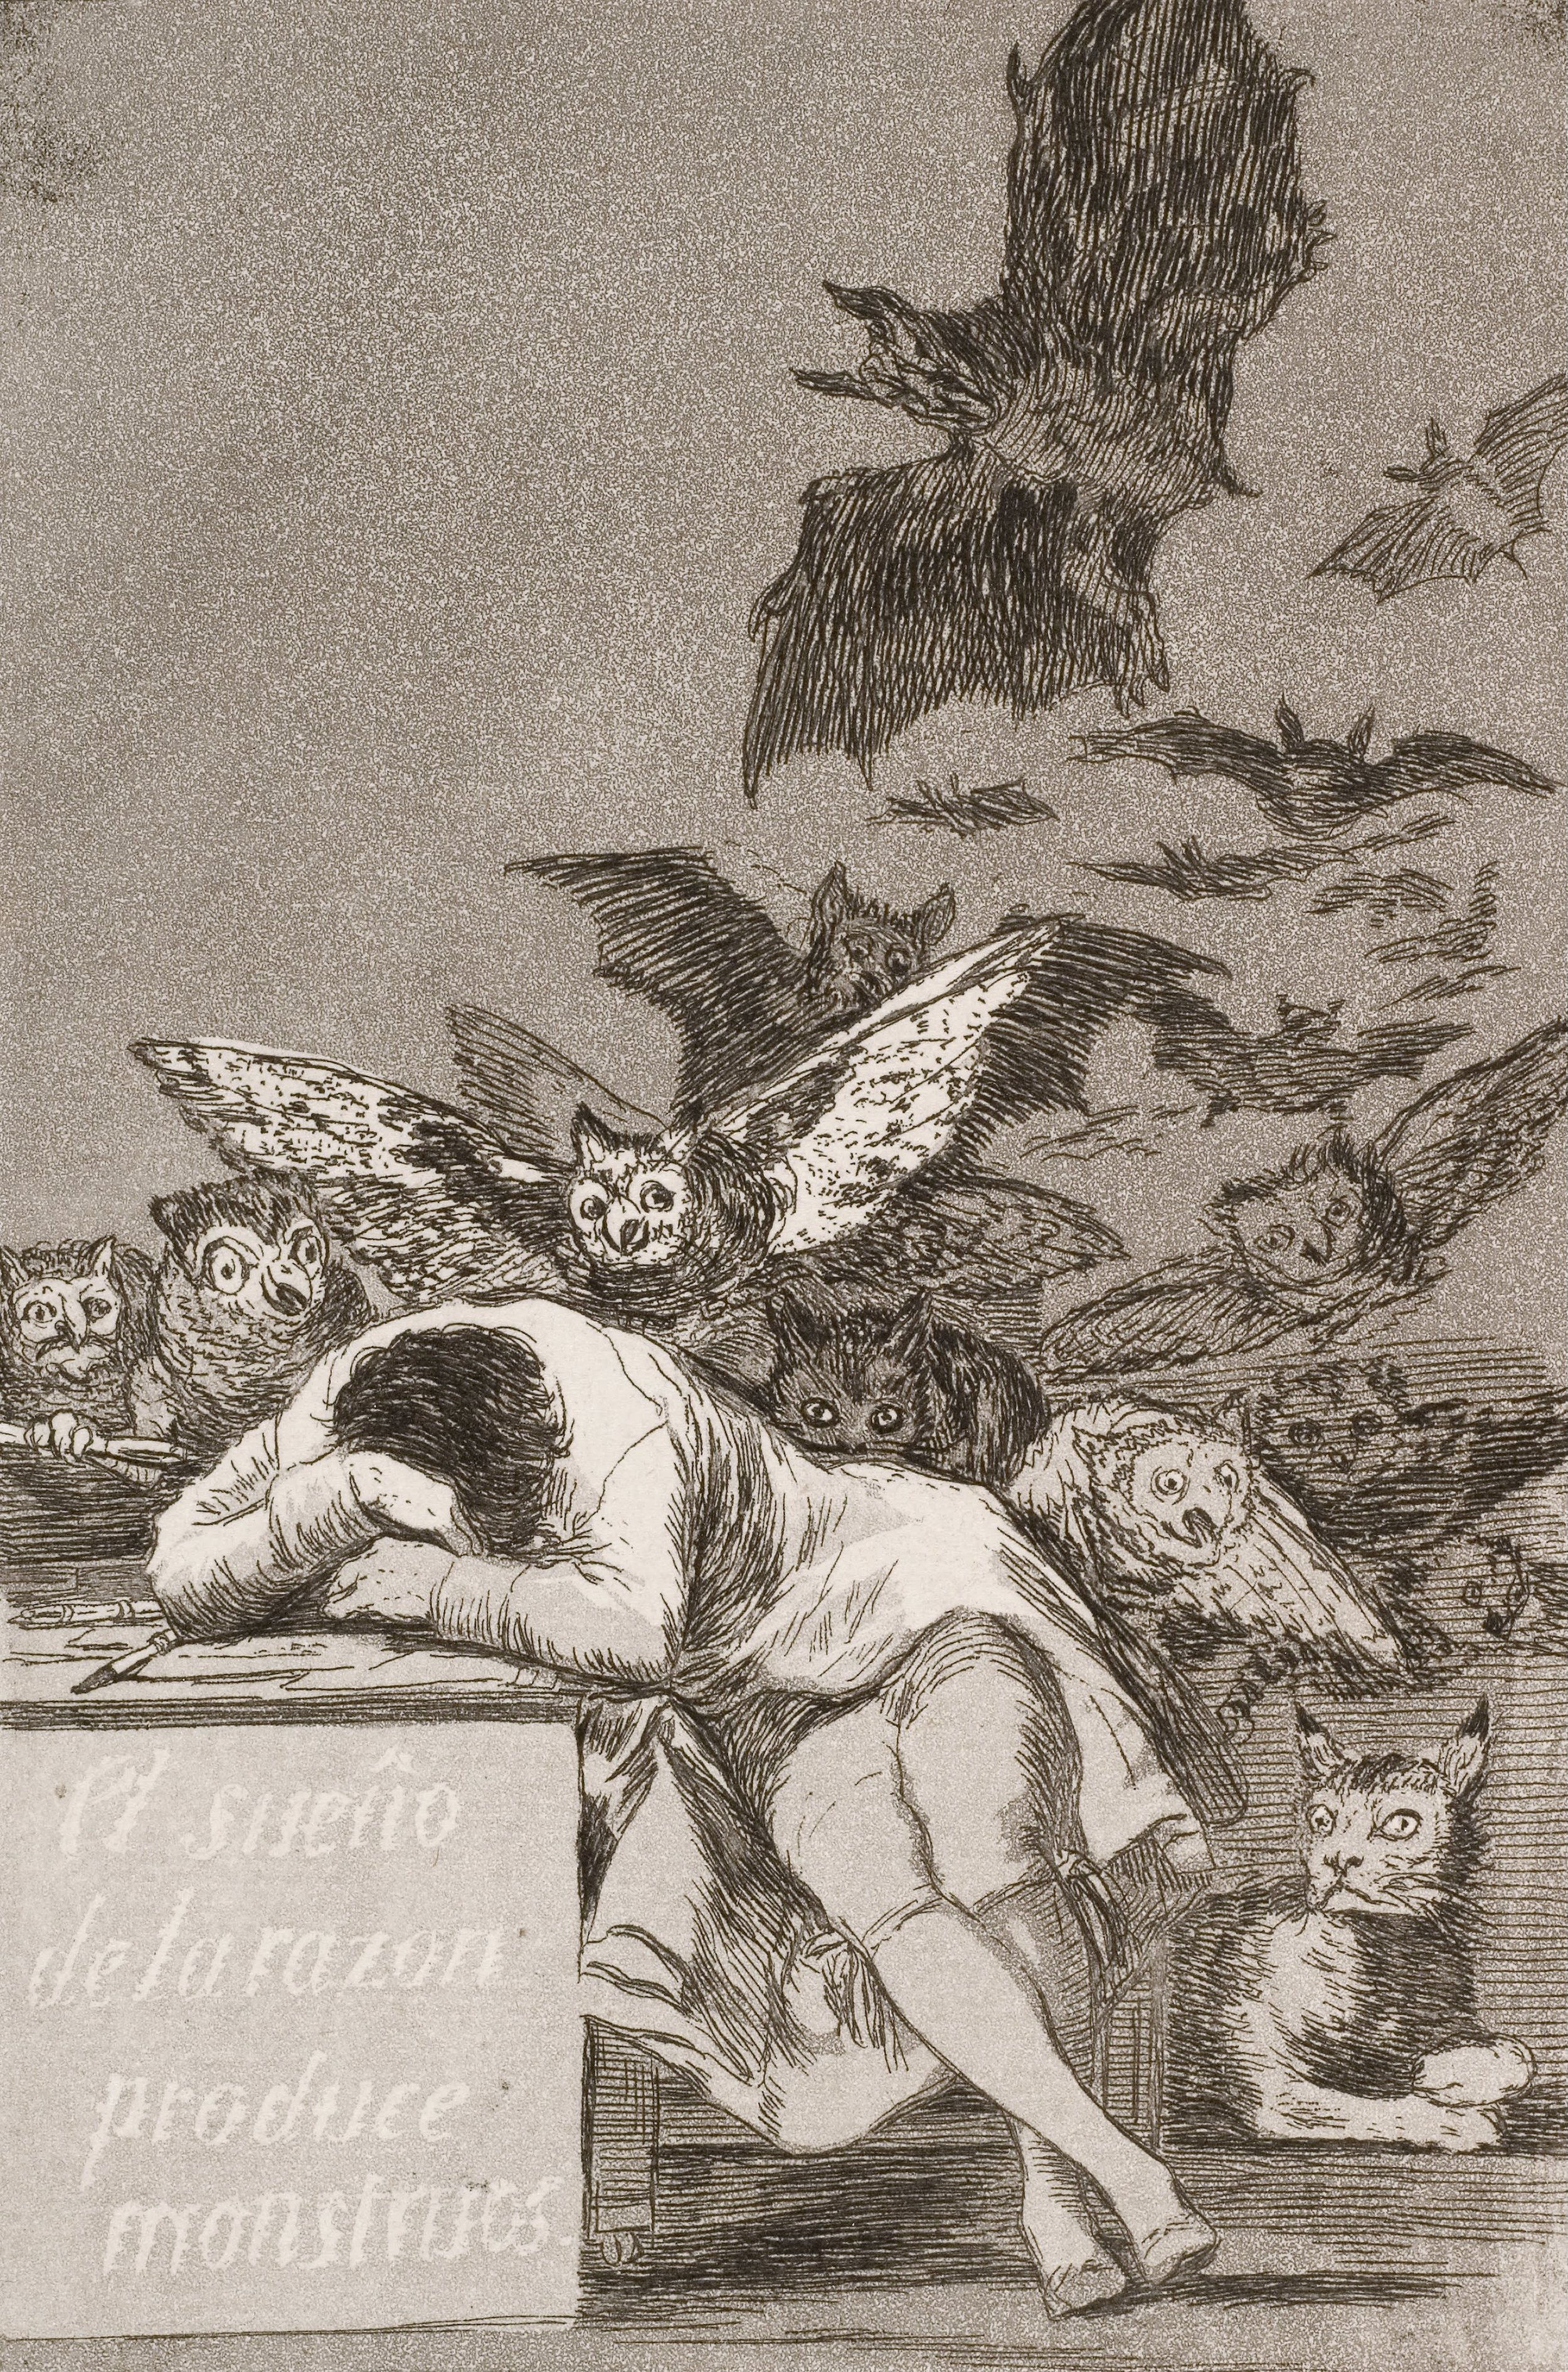 "Francisco de Goya (c. 1797)   The Sleep of Reason Produces Monsters   (El sueño de la razón produce monstruos )   Plate 43 of the 80 in the  Los Caprichos  series. Etching aquatint, drypoint and burin.   A few years ago, Ken Ralston (friend and master IB English Literature teacher) knowing that I was an admirer of Goya, once challenged me: ""What if we translated this as the  Dream  of Reason instead of the  Sleep  of Reason?"" Think carefully about this… To what extent can Reason, and all it entails let us down?"